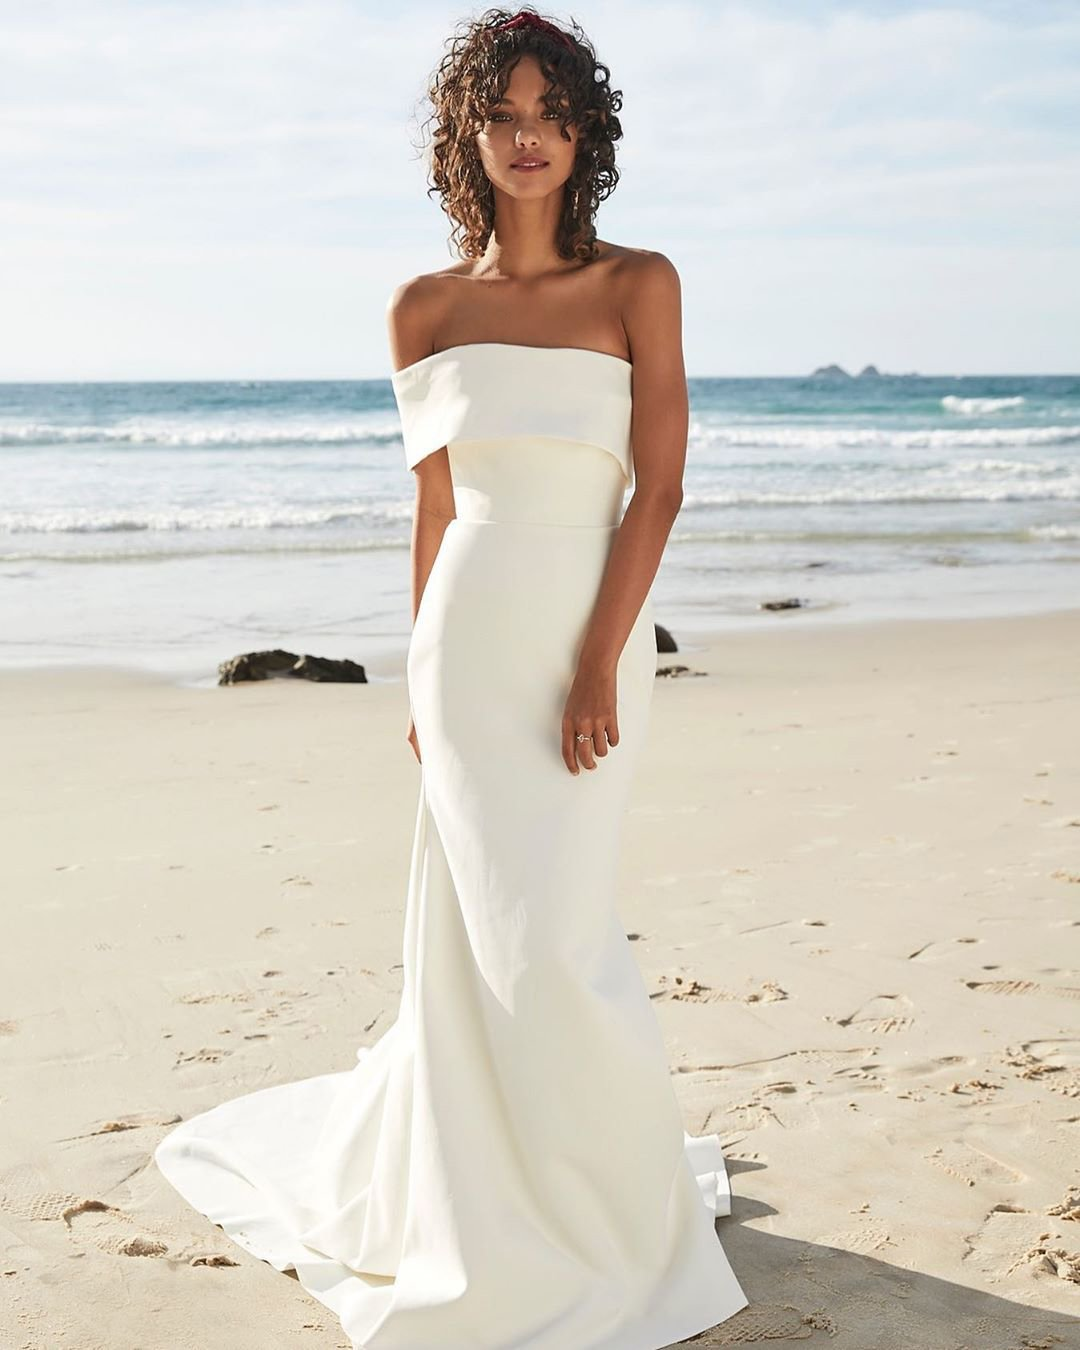 beach wedding simple straight neckline chosenbyoneday